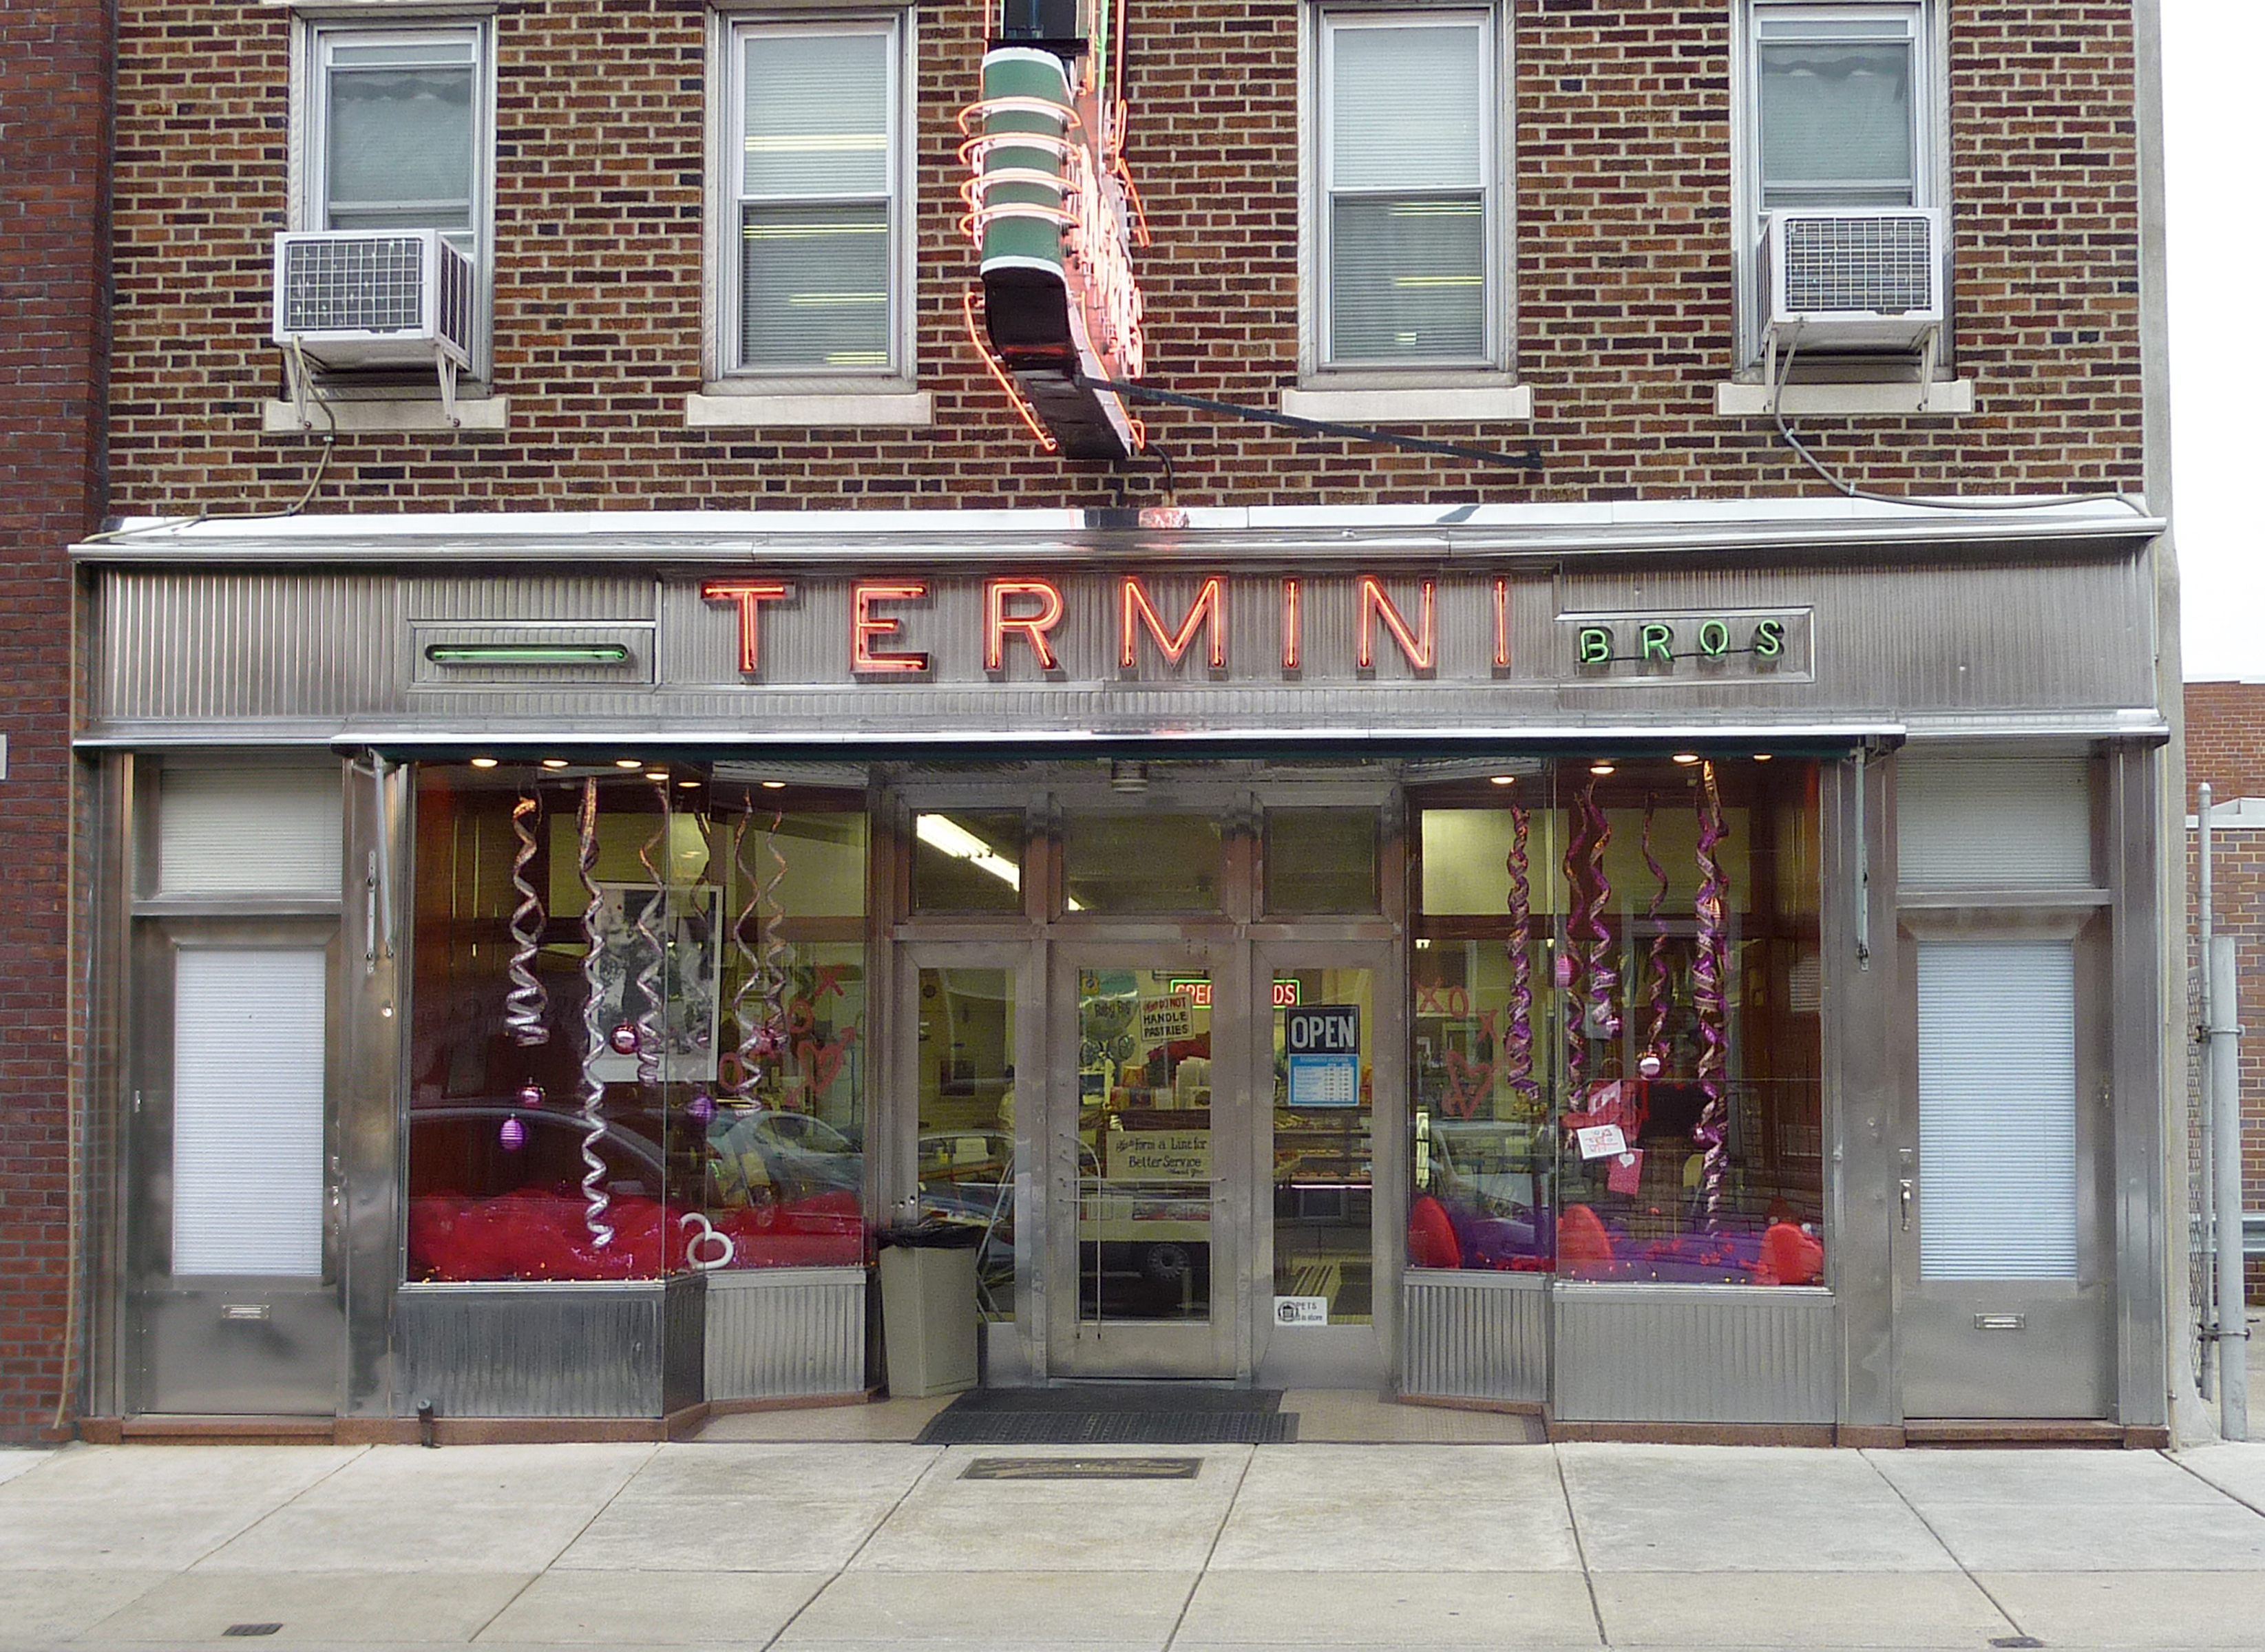 Termini Brothers Bakery, 1523 S. 8th St.